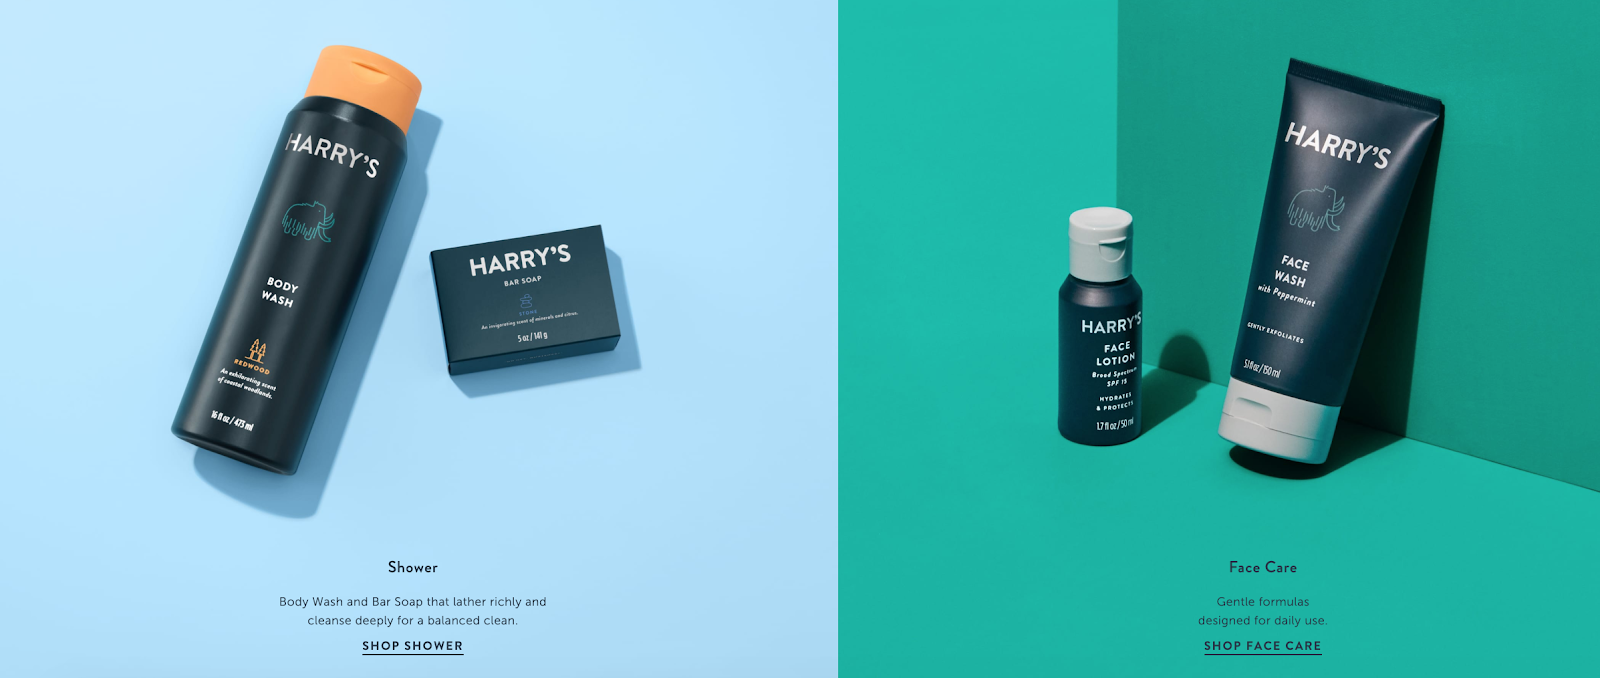 Harry's website About page design